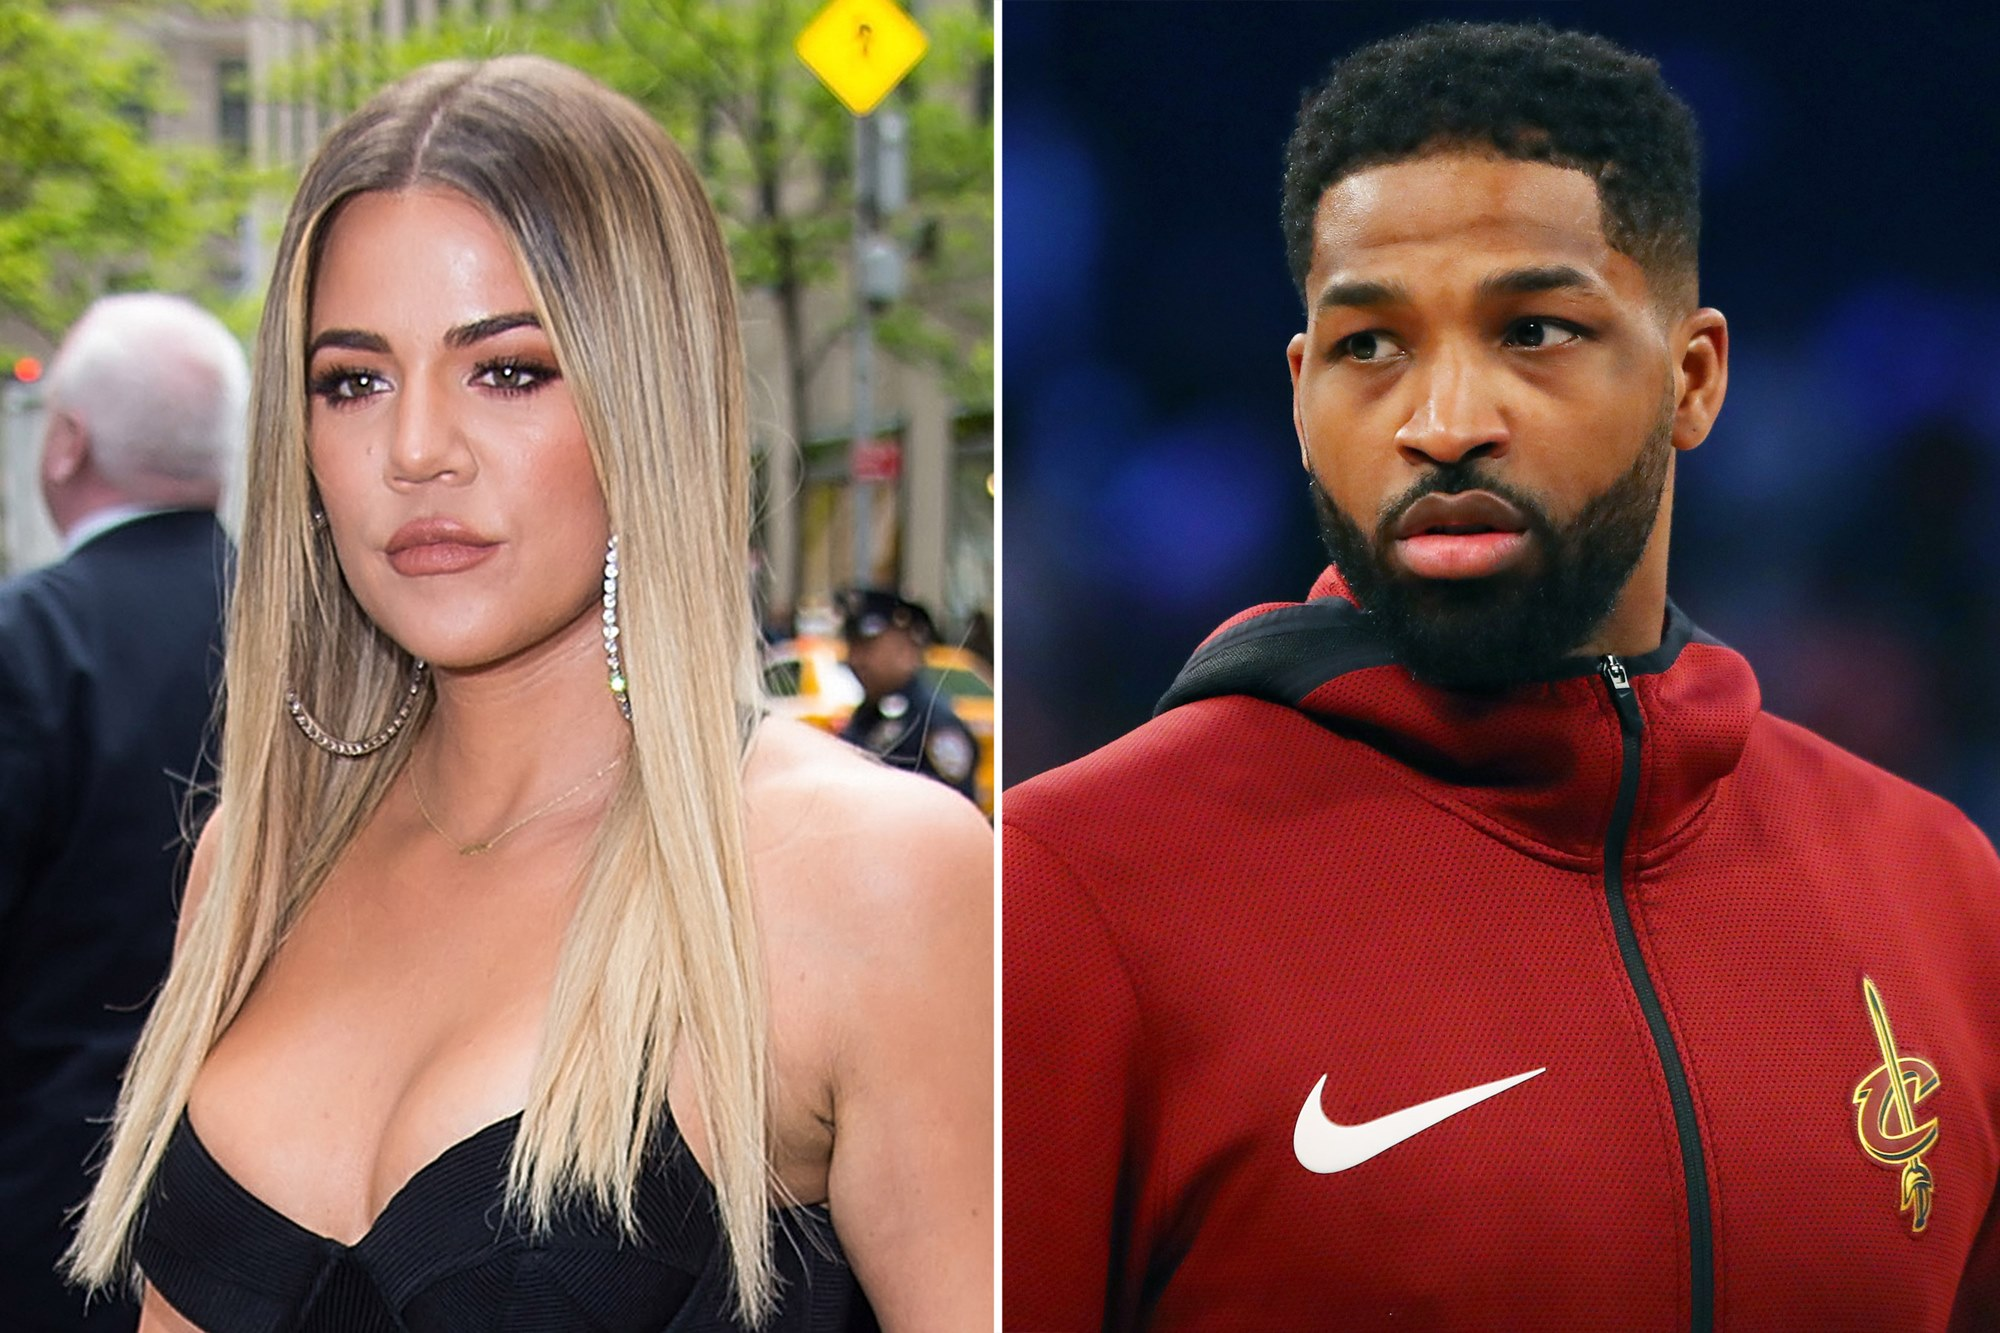 Khloe Kardashian Tristan Thompson Baby True Regrets Blame After Breakup